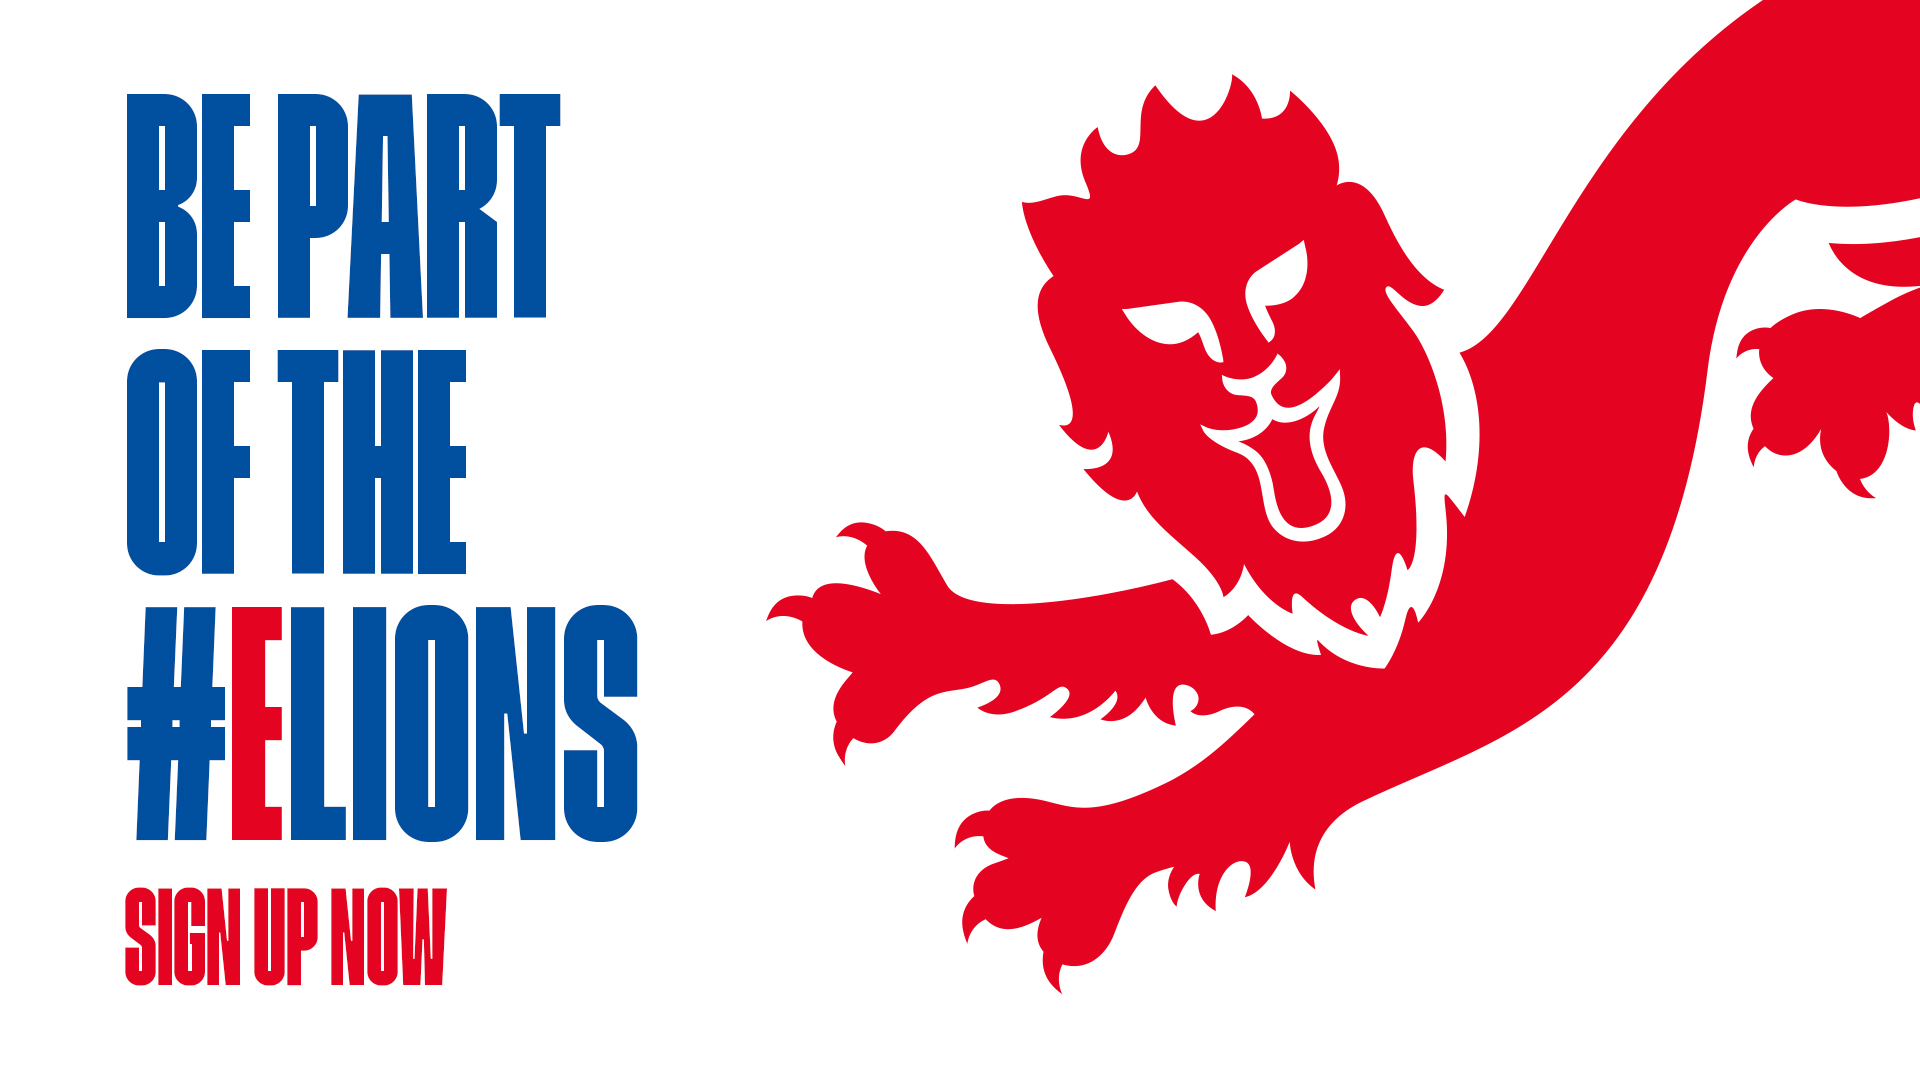 History is to be made with the formation of England's first esports team, the eLions